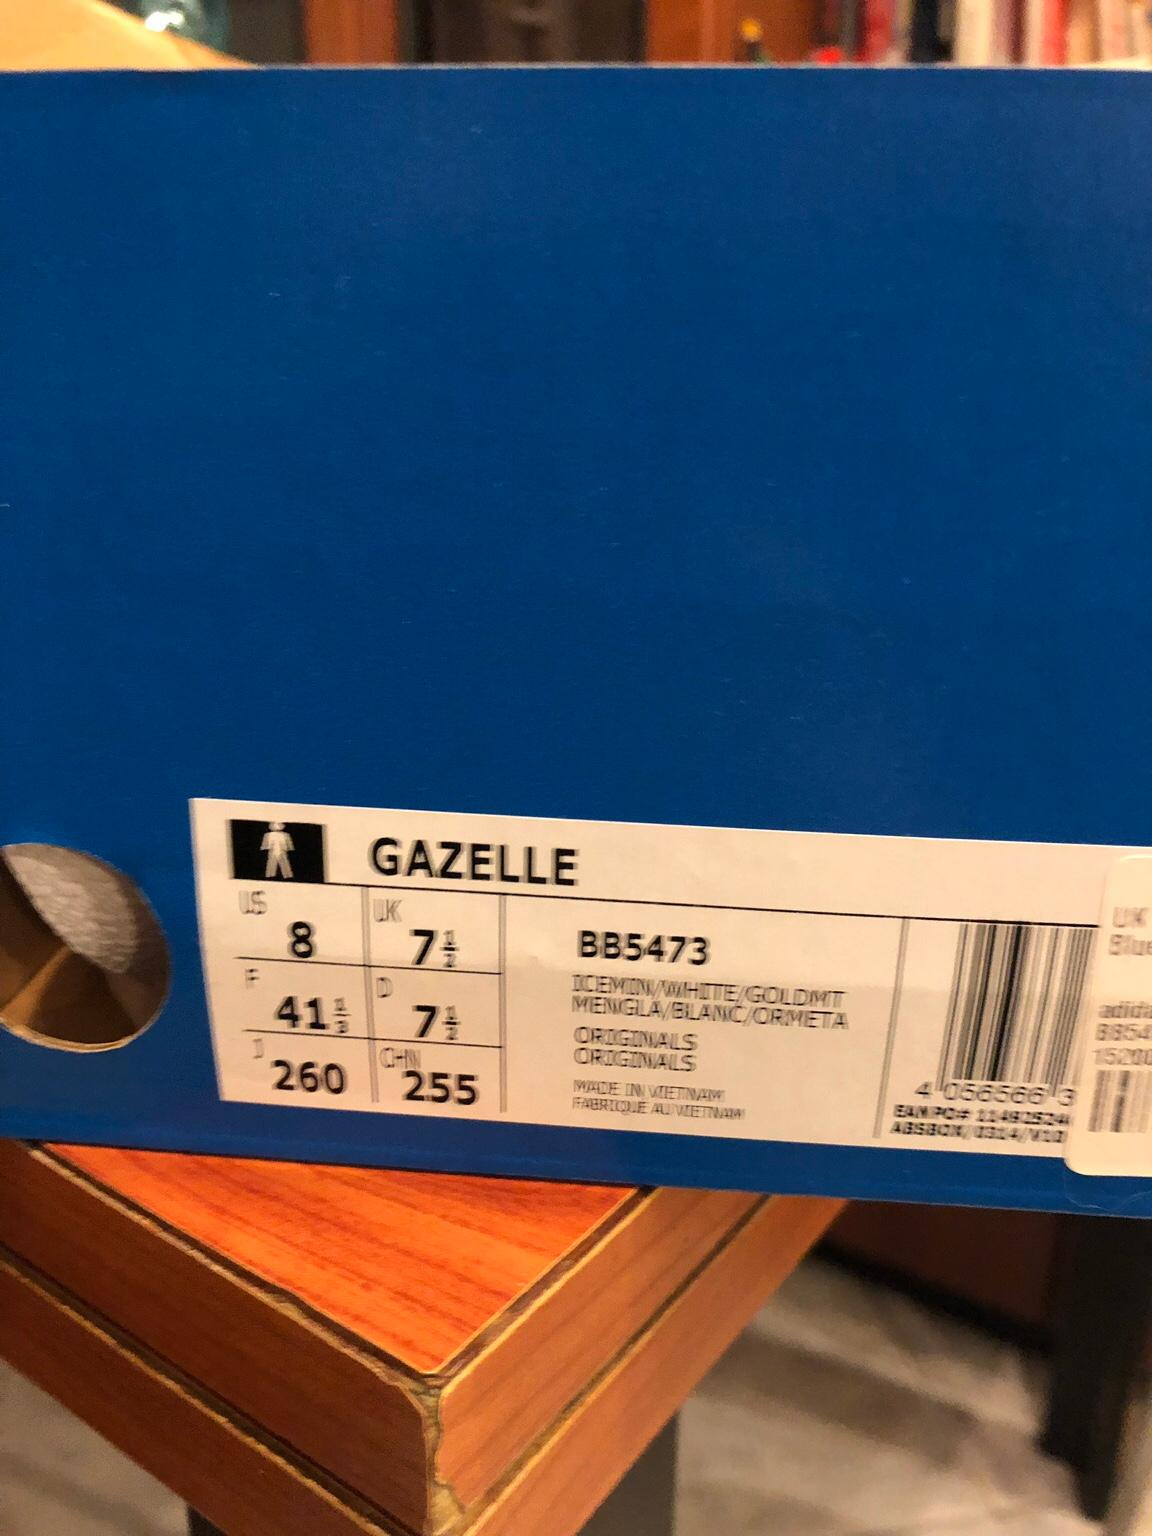 Adidas Gazelle mai usate! in 20135 Milano for €55.00 for